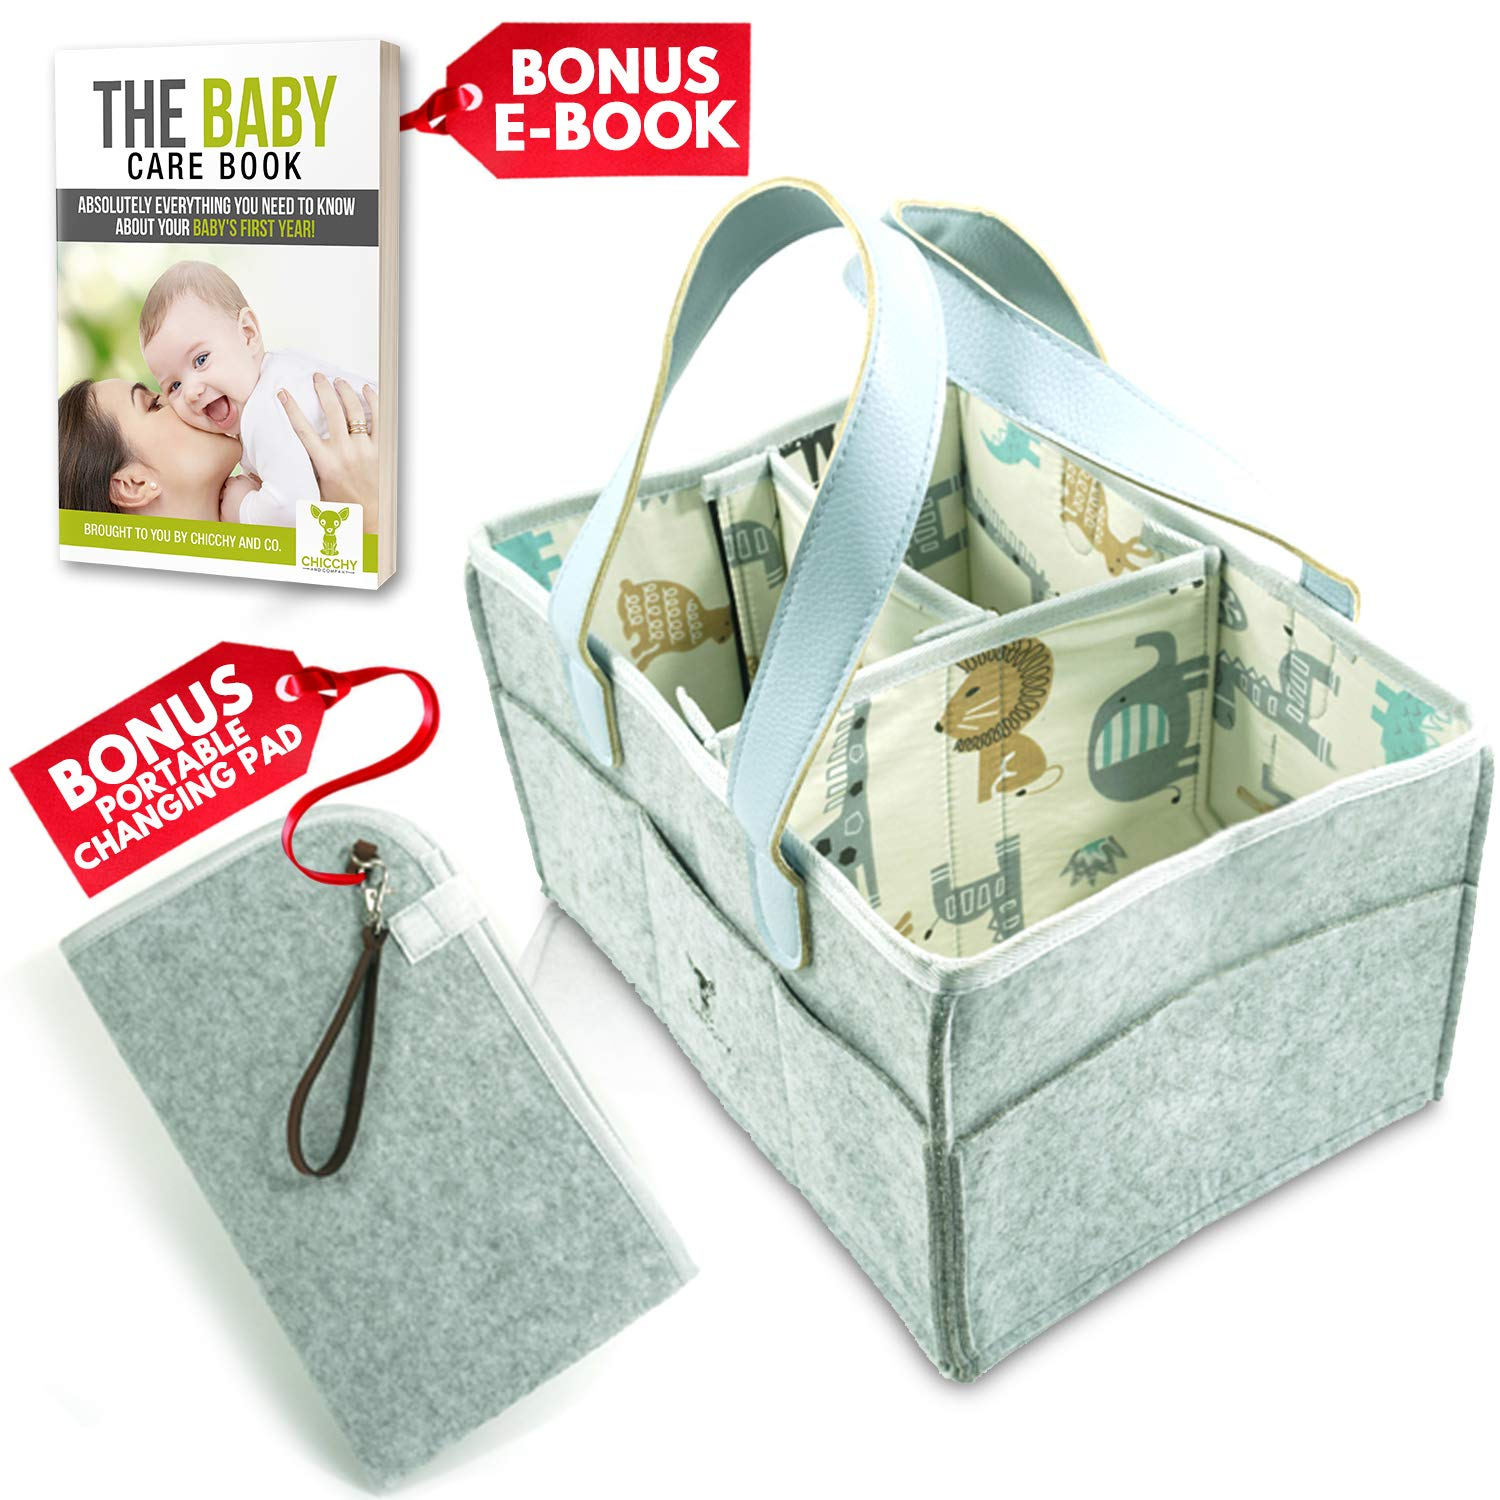 Chicchy & Co. Foldable Baby Diaper Caddy Organizer – Great Diaper Caddy Organizer with Changing Pad and My Baby's First Year E-Book